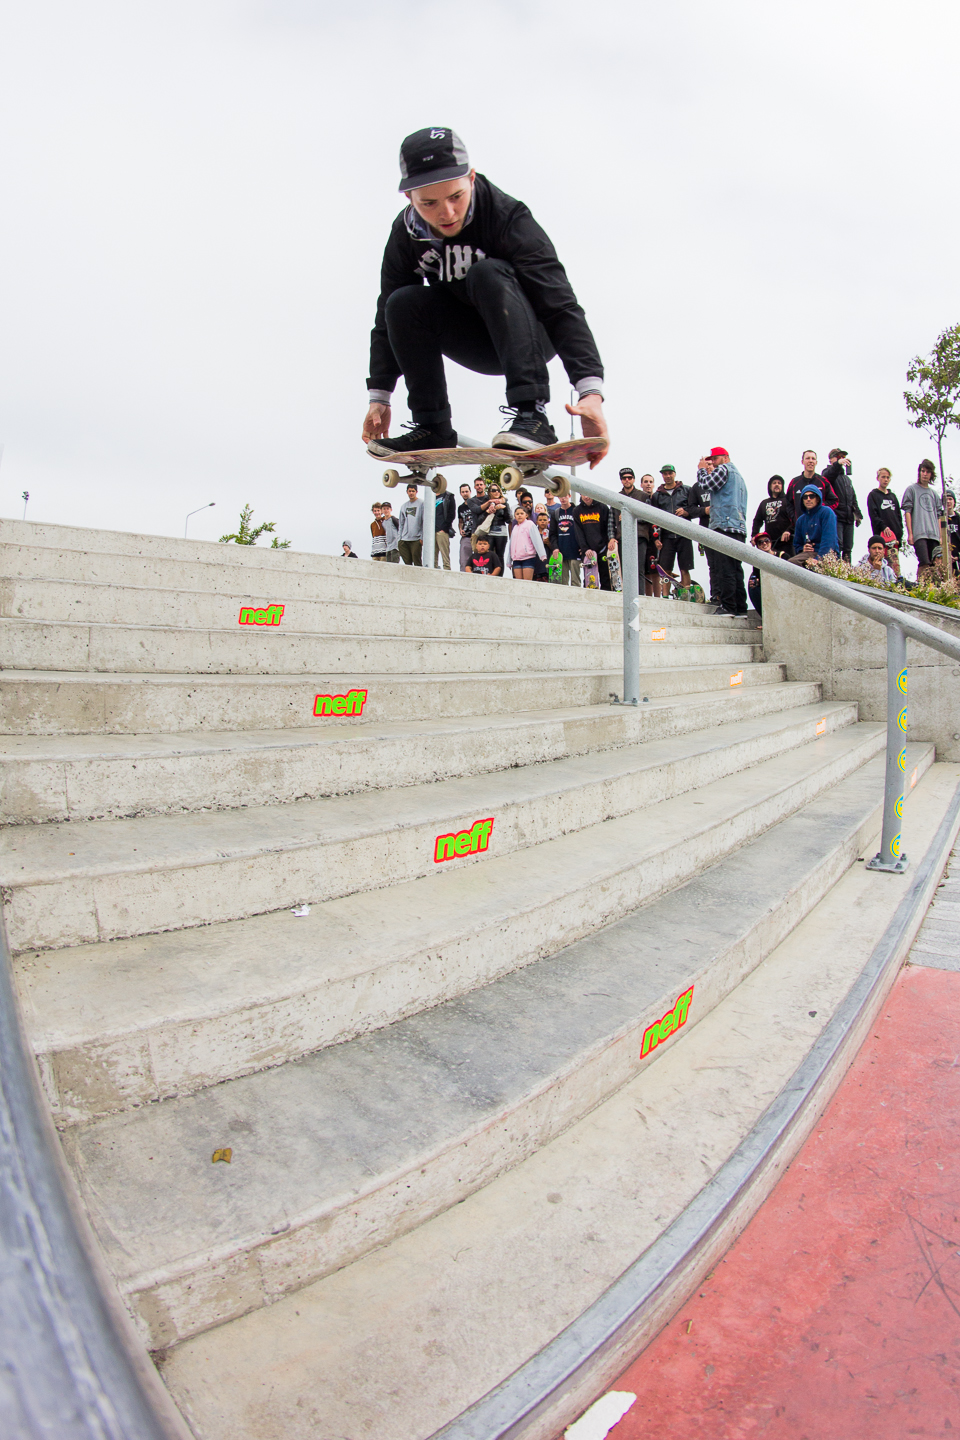 Josh Stewart - Cannonball / Jack Grant Photo